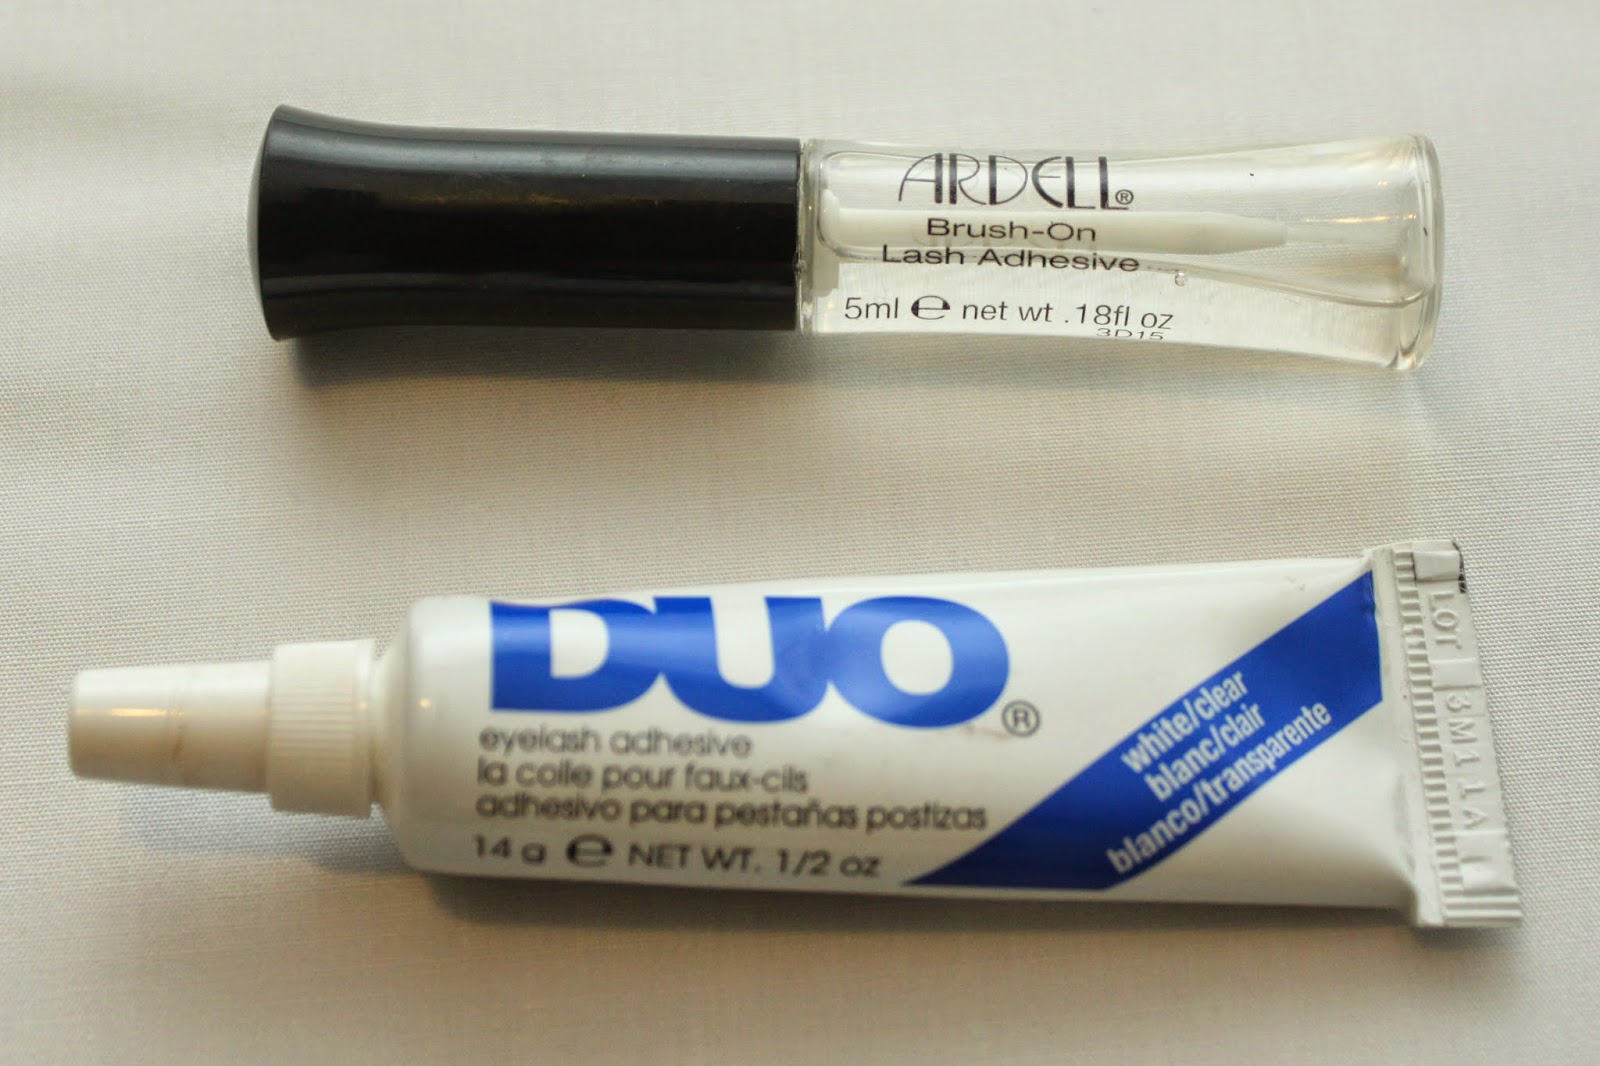 Ardell and Duo Lash Glue